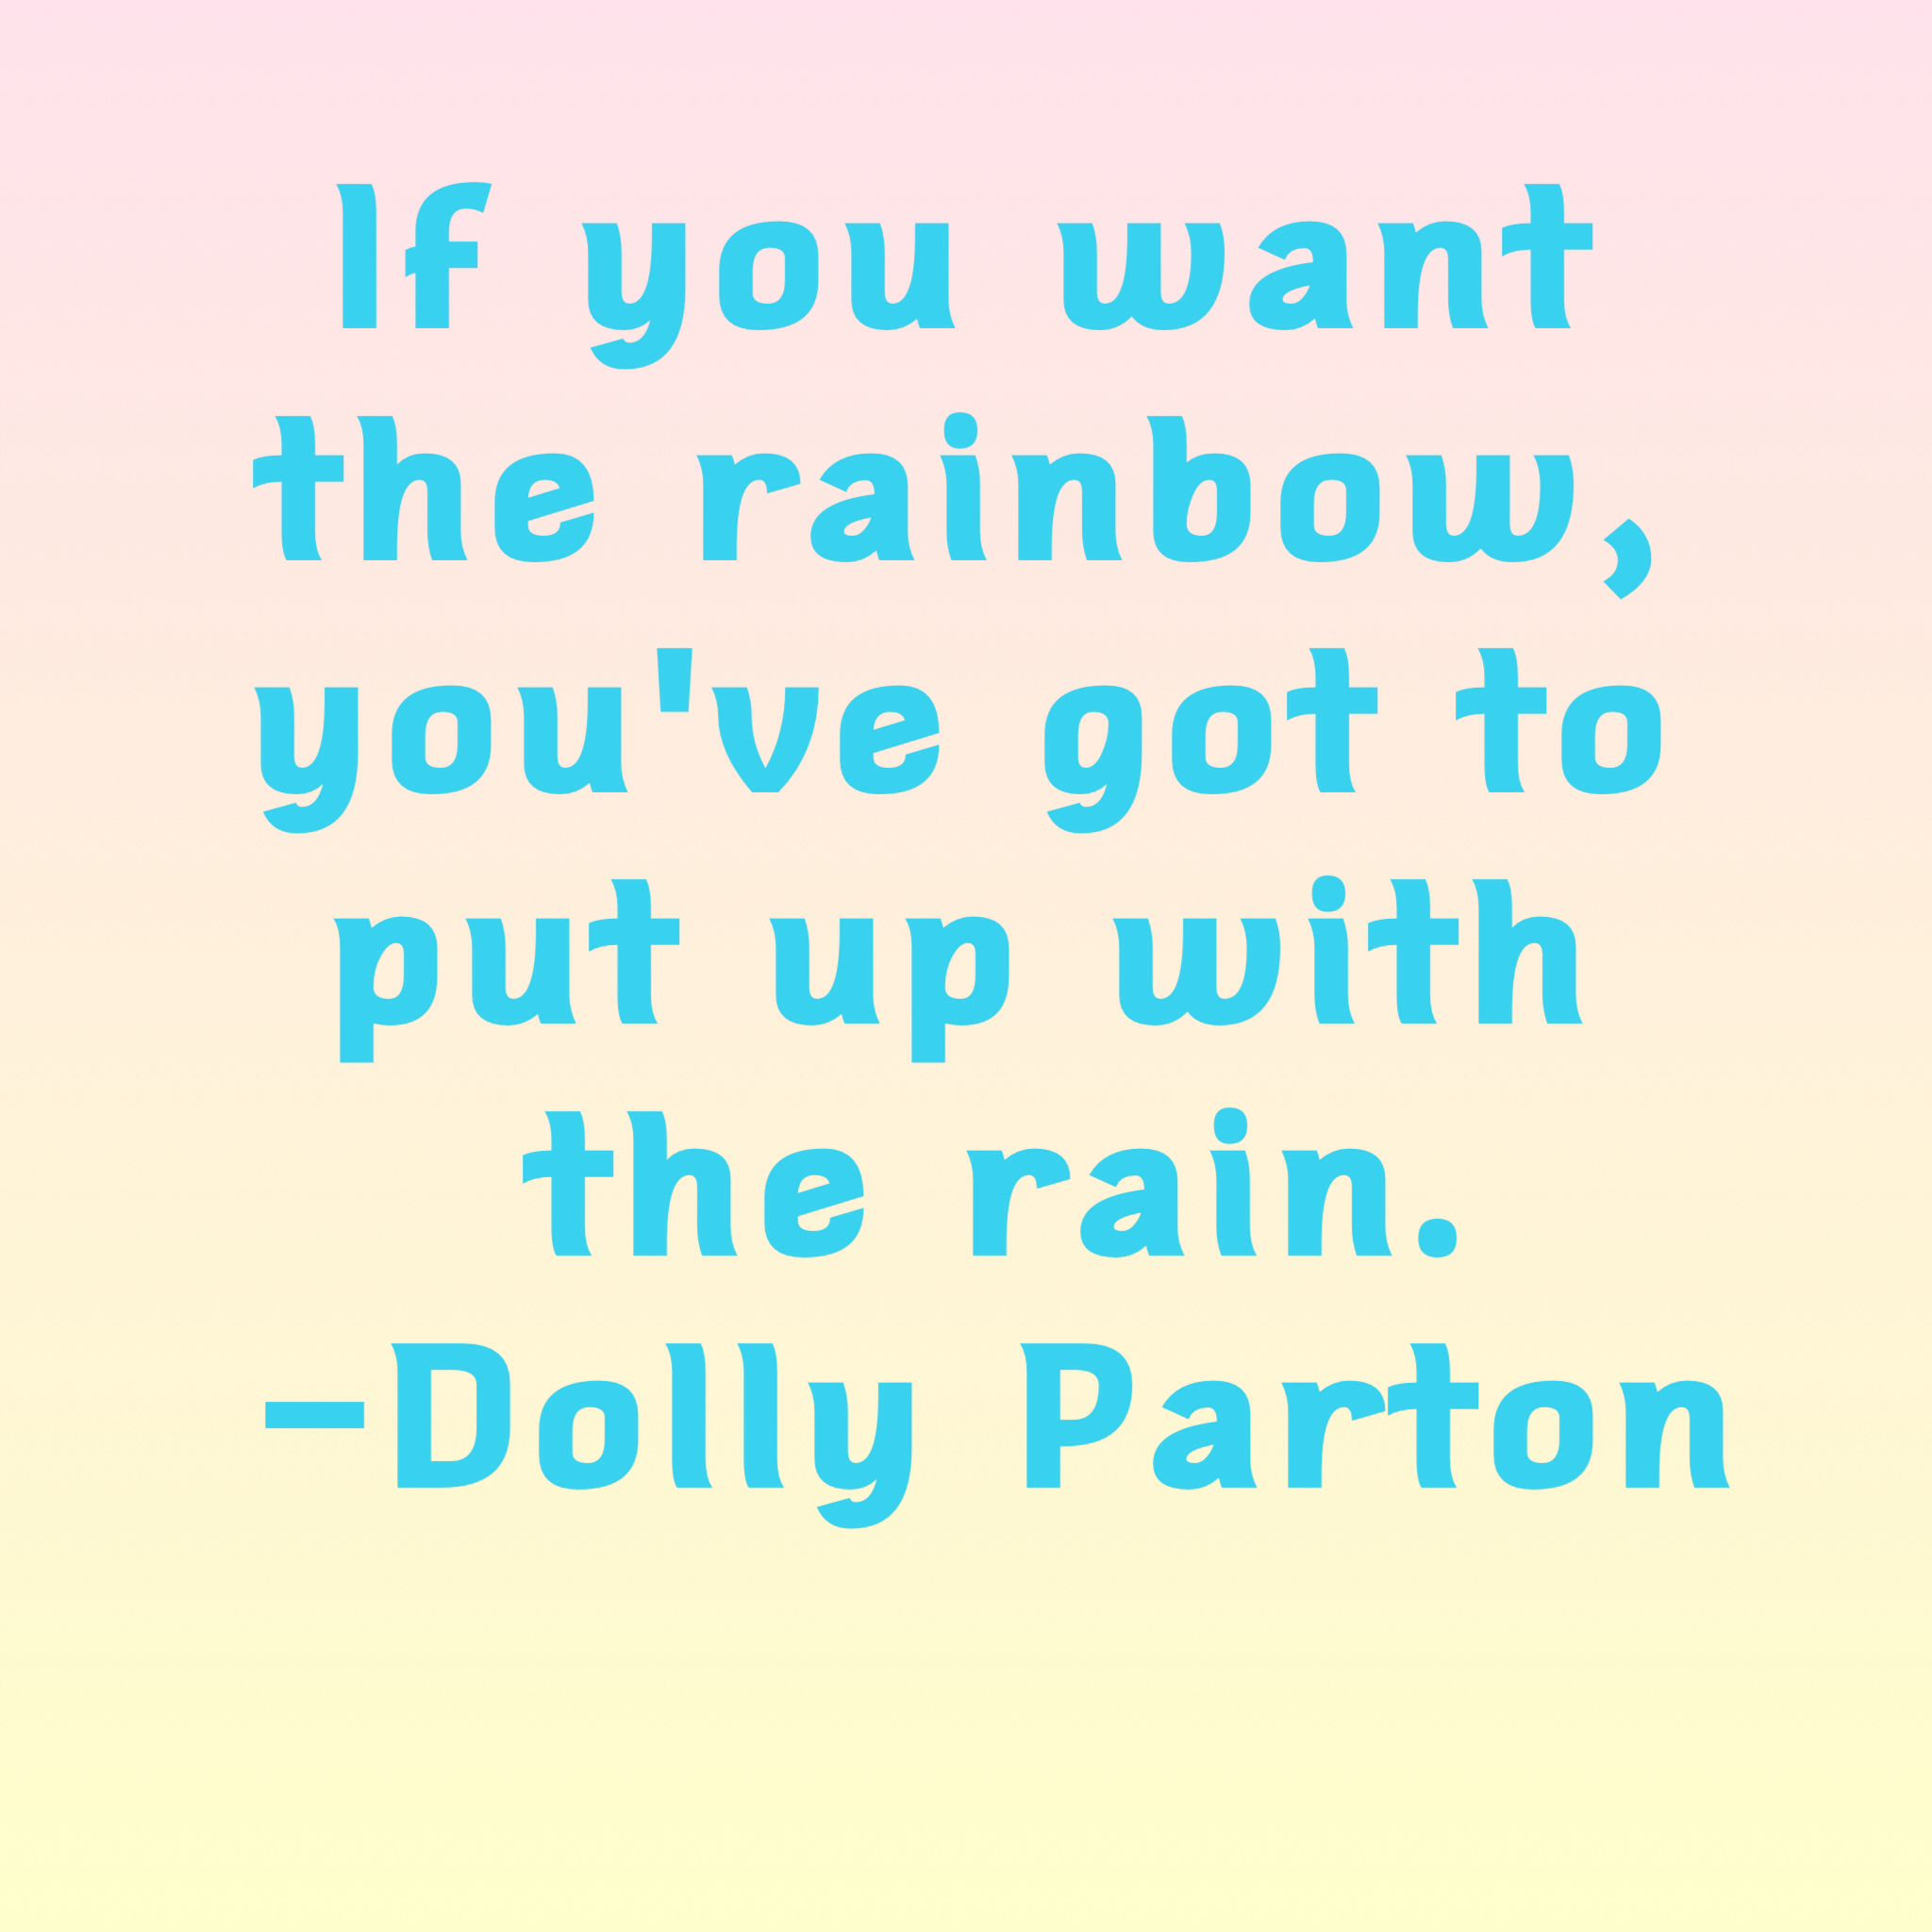 Quotes And Sayings: Dolly Parton Quotes And Sayings. QuotesGram